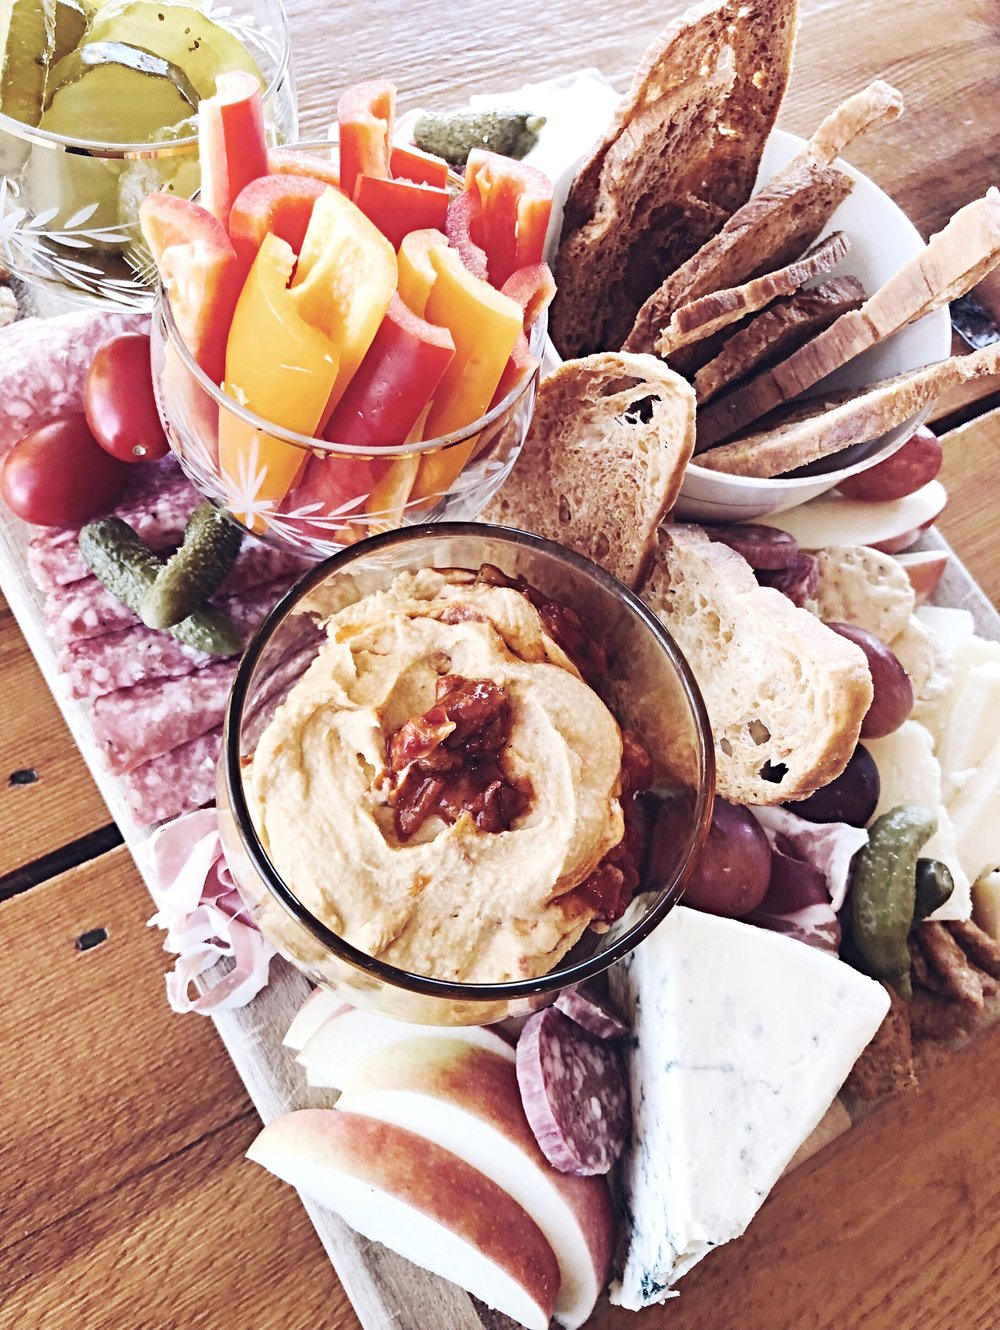 I'm sharing some tips for how to make a charcuterie board over at hprallandco.com!